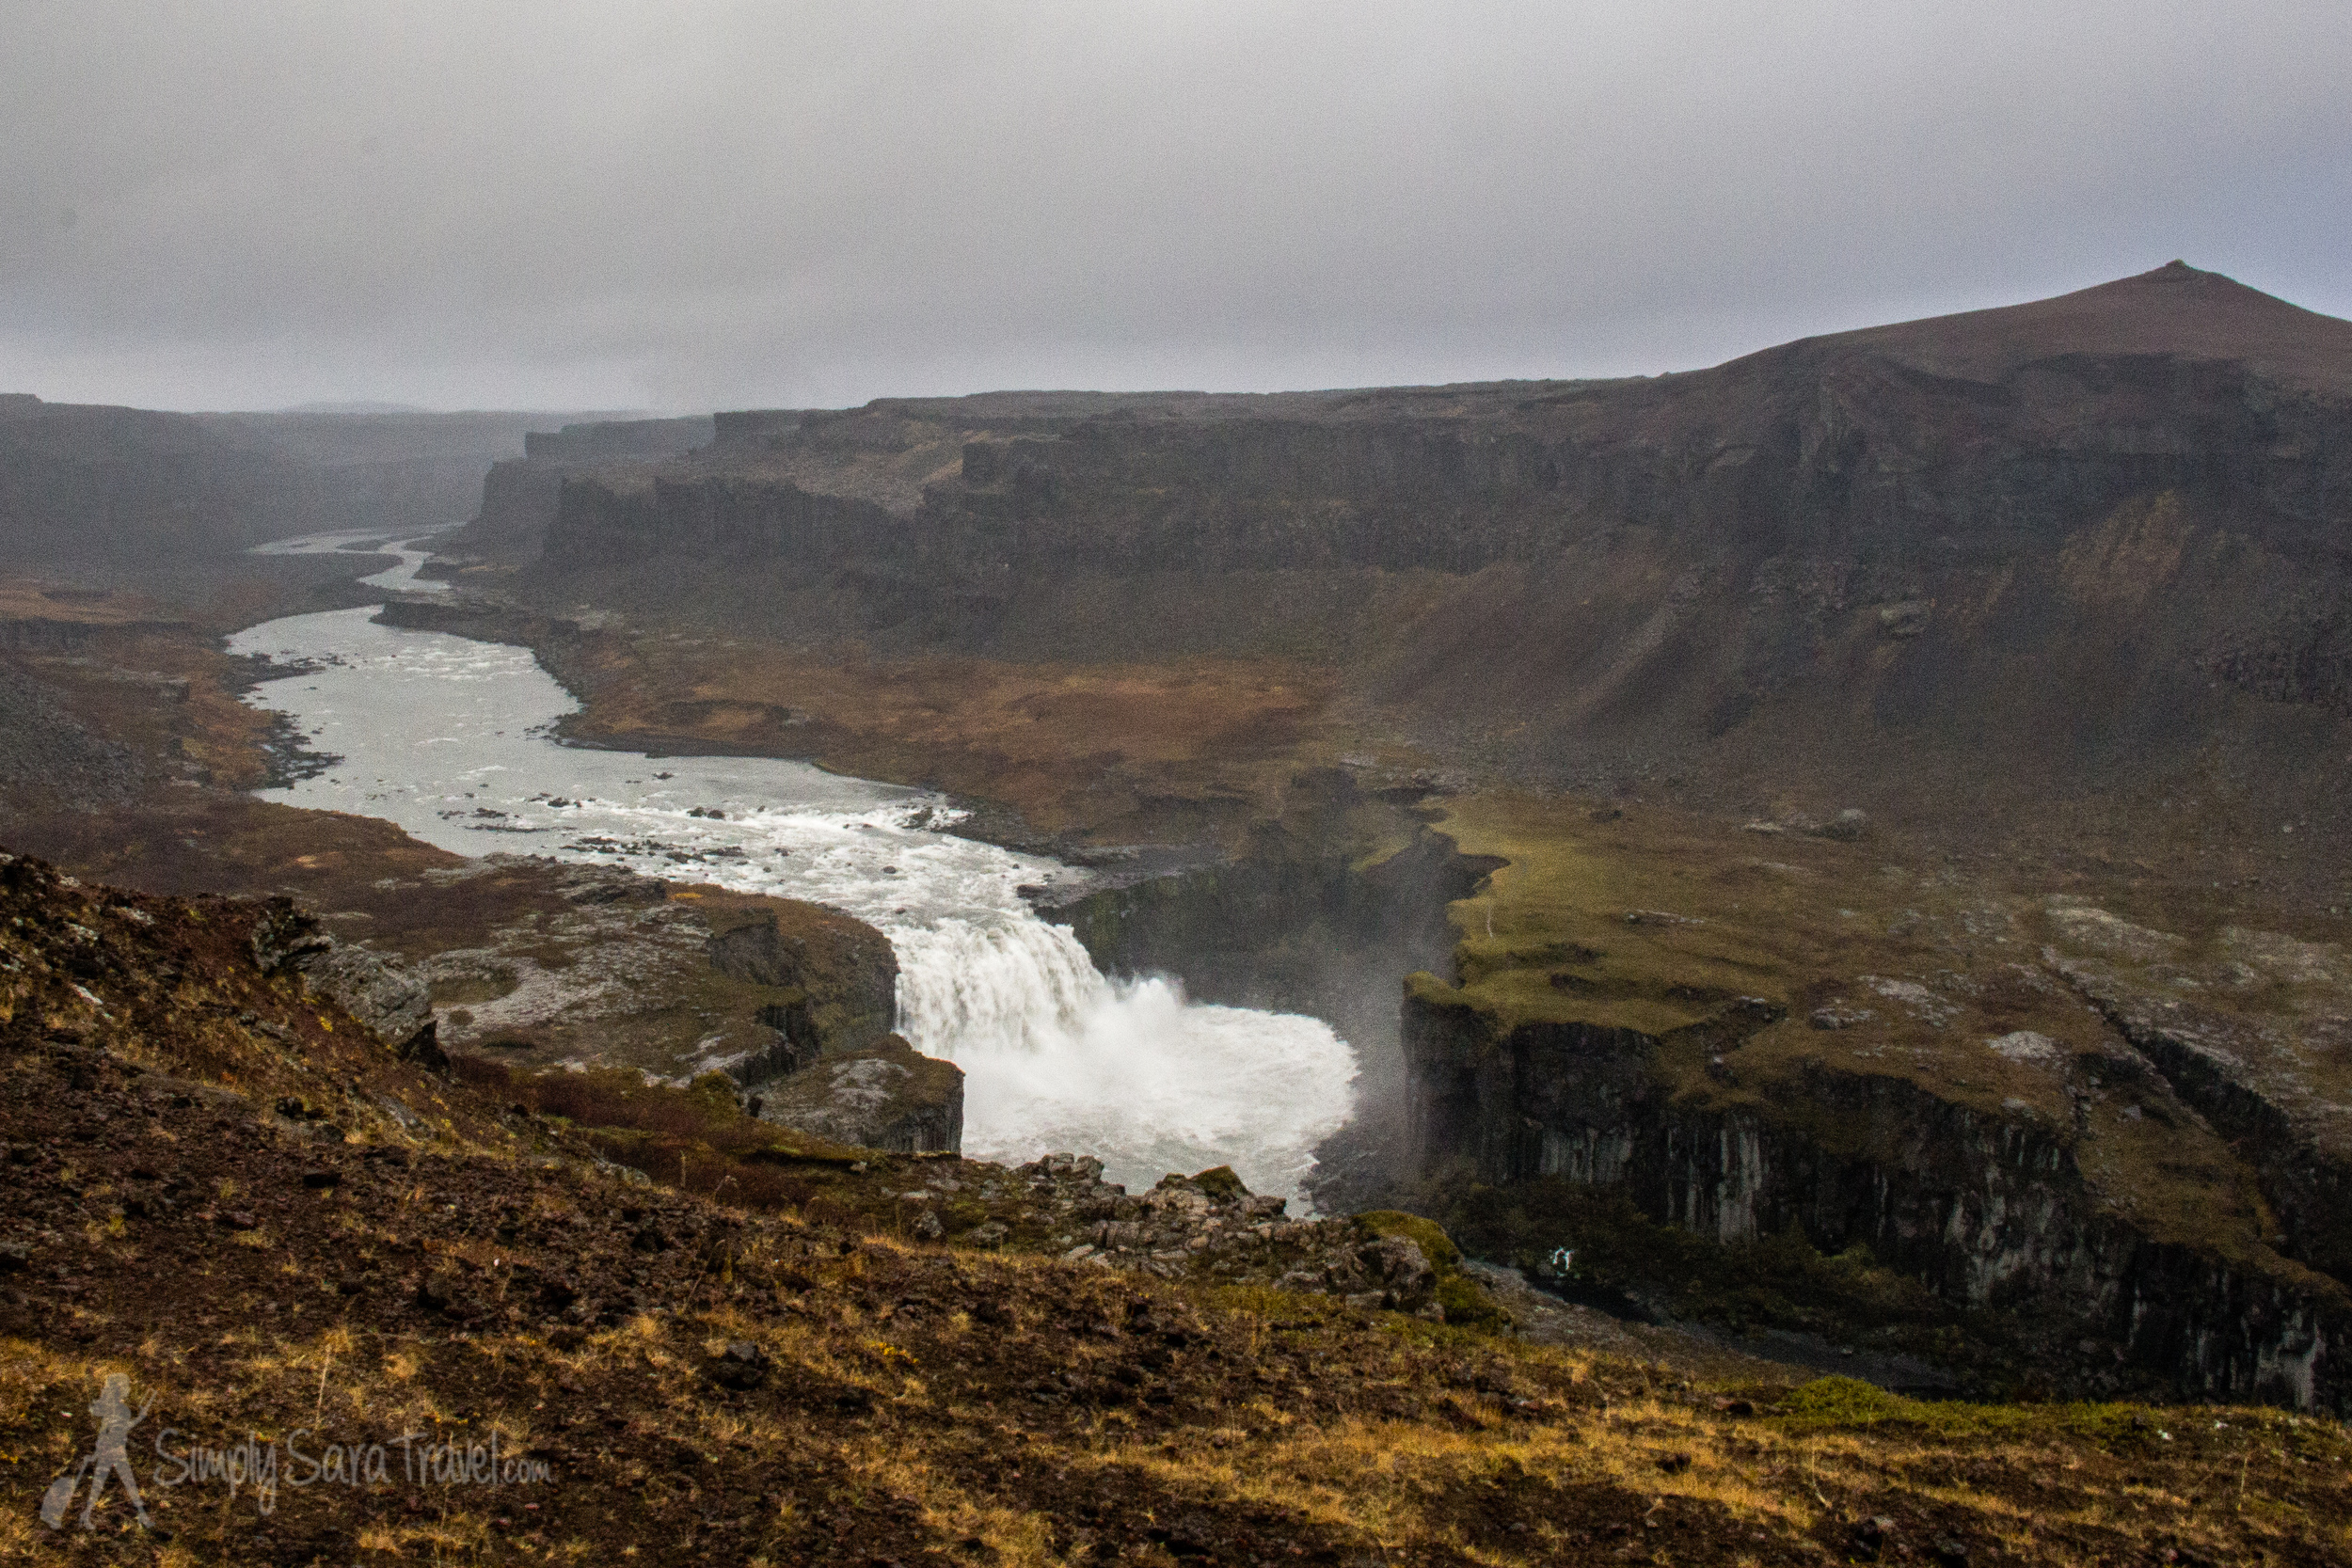 As we drove away from Dettifoss, we followed a sign for a lookout point of the next waterfall downstream, Hafragilsfoss. The spot gave us an appreciation from afar of Dettifoss' size.